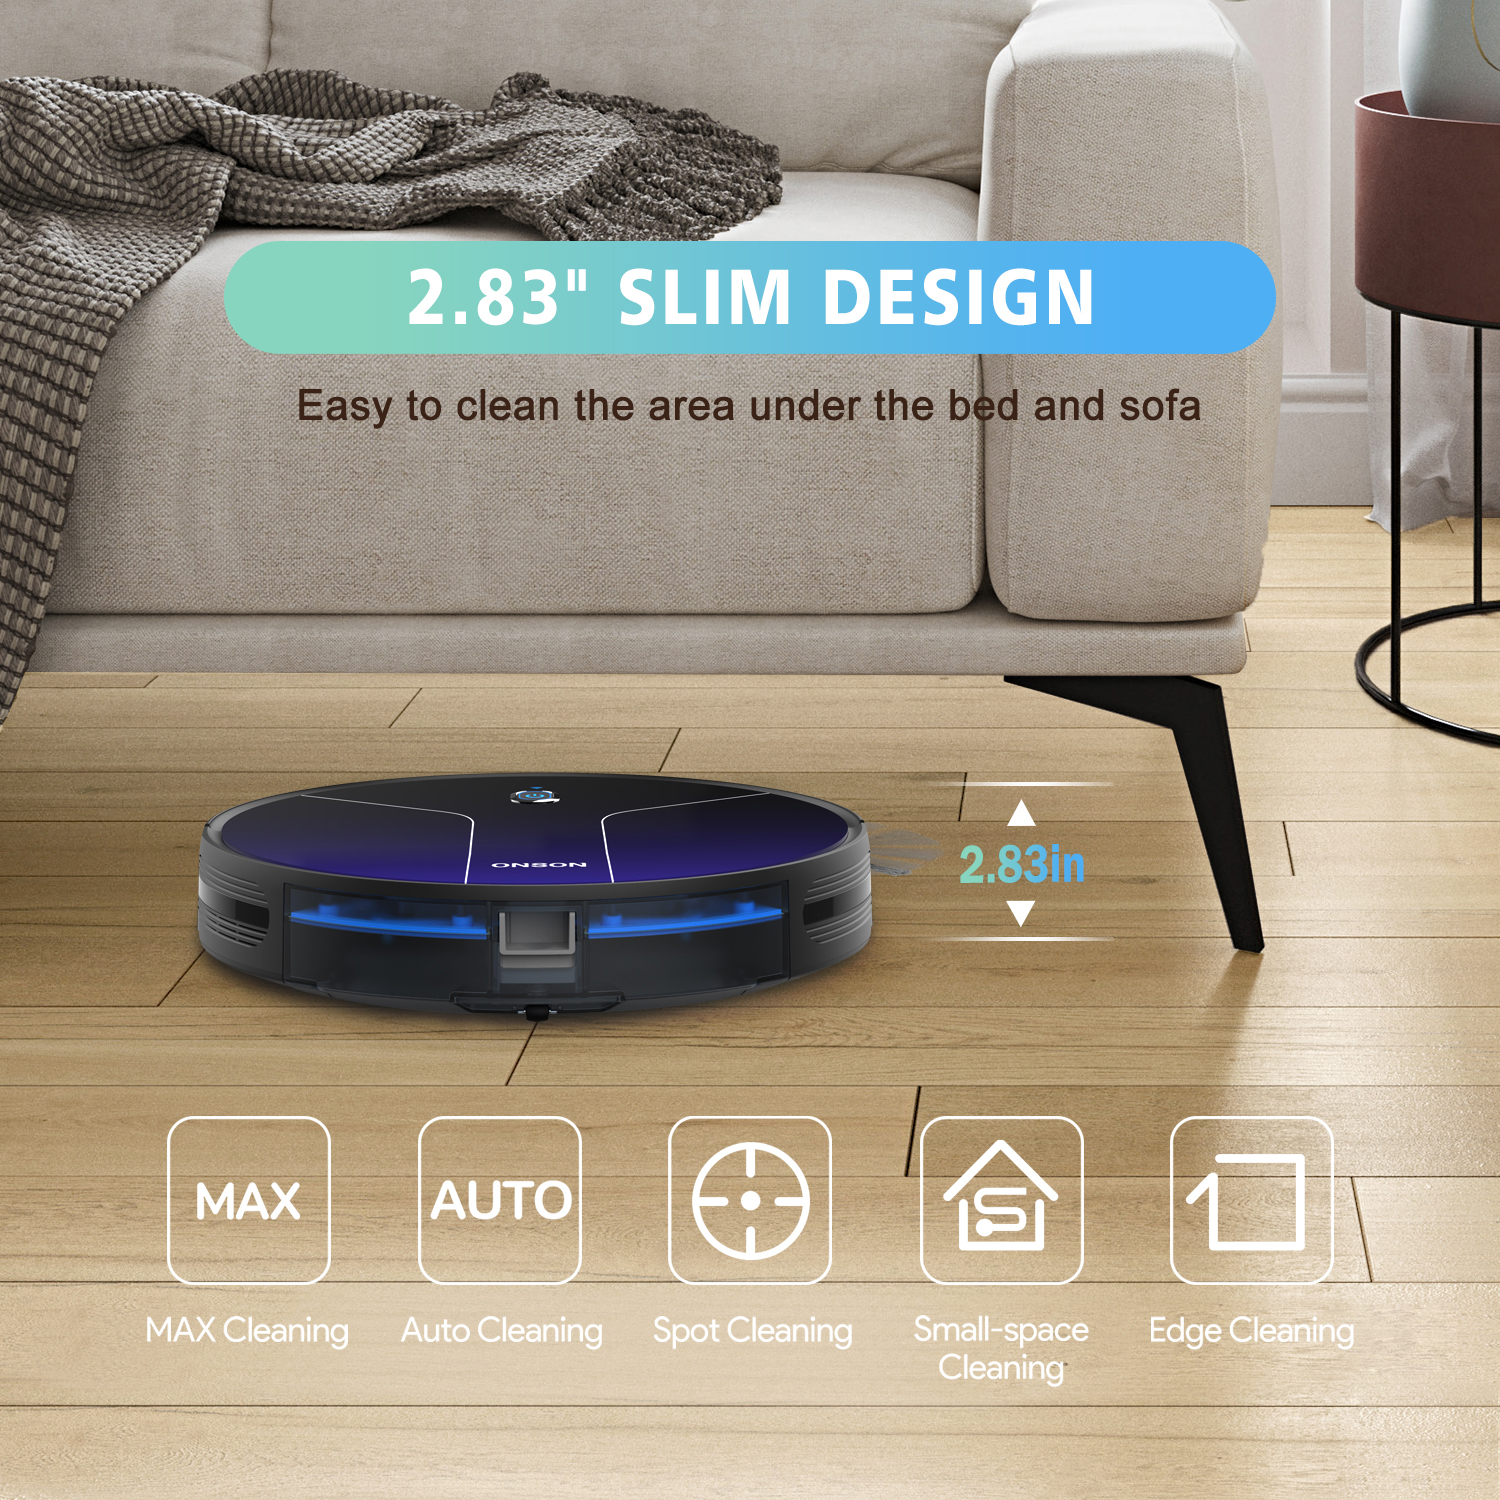 ONSON J20C 2020 WiFi Smart Cleaner 2100Pa Low Noise Robot Vacuum Works with Alexa